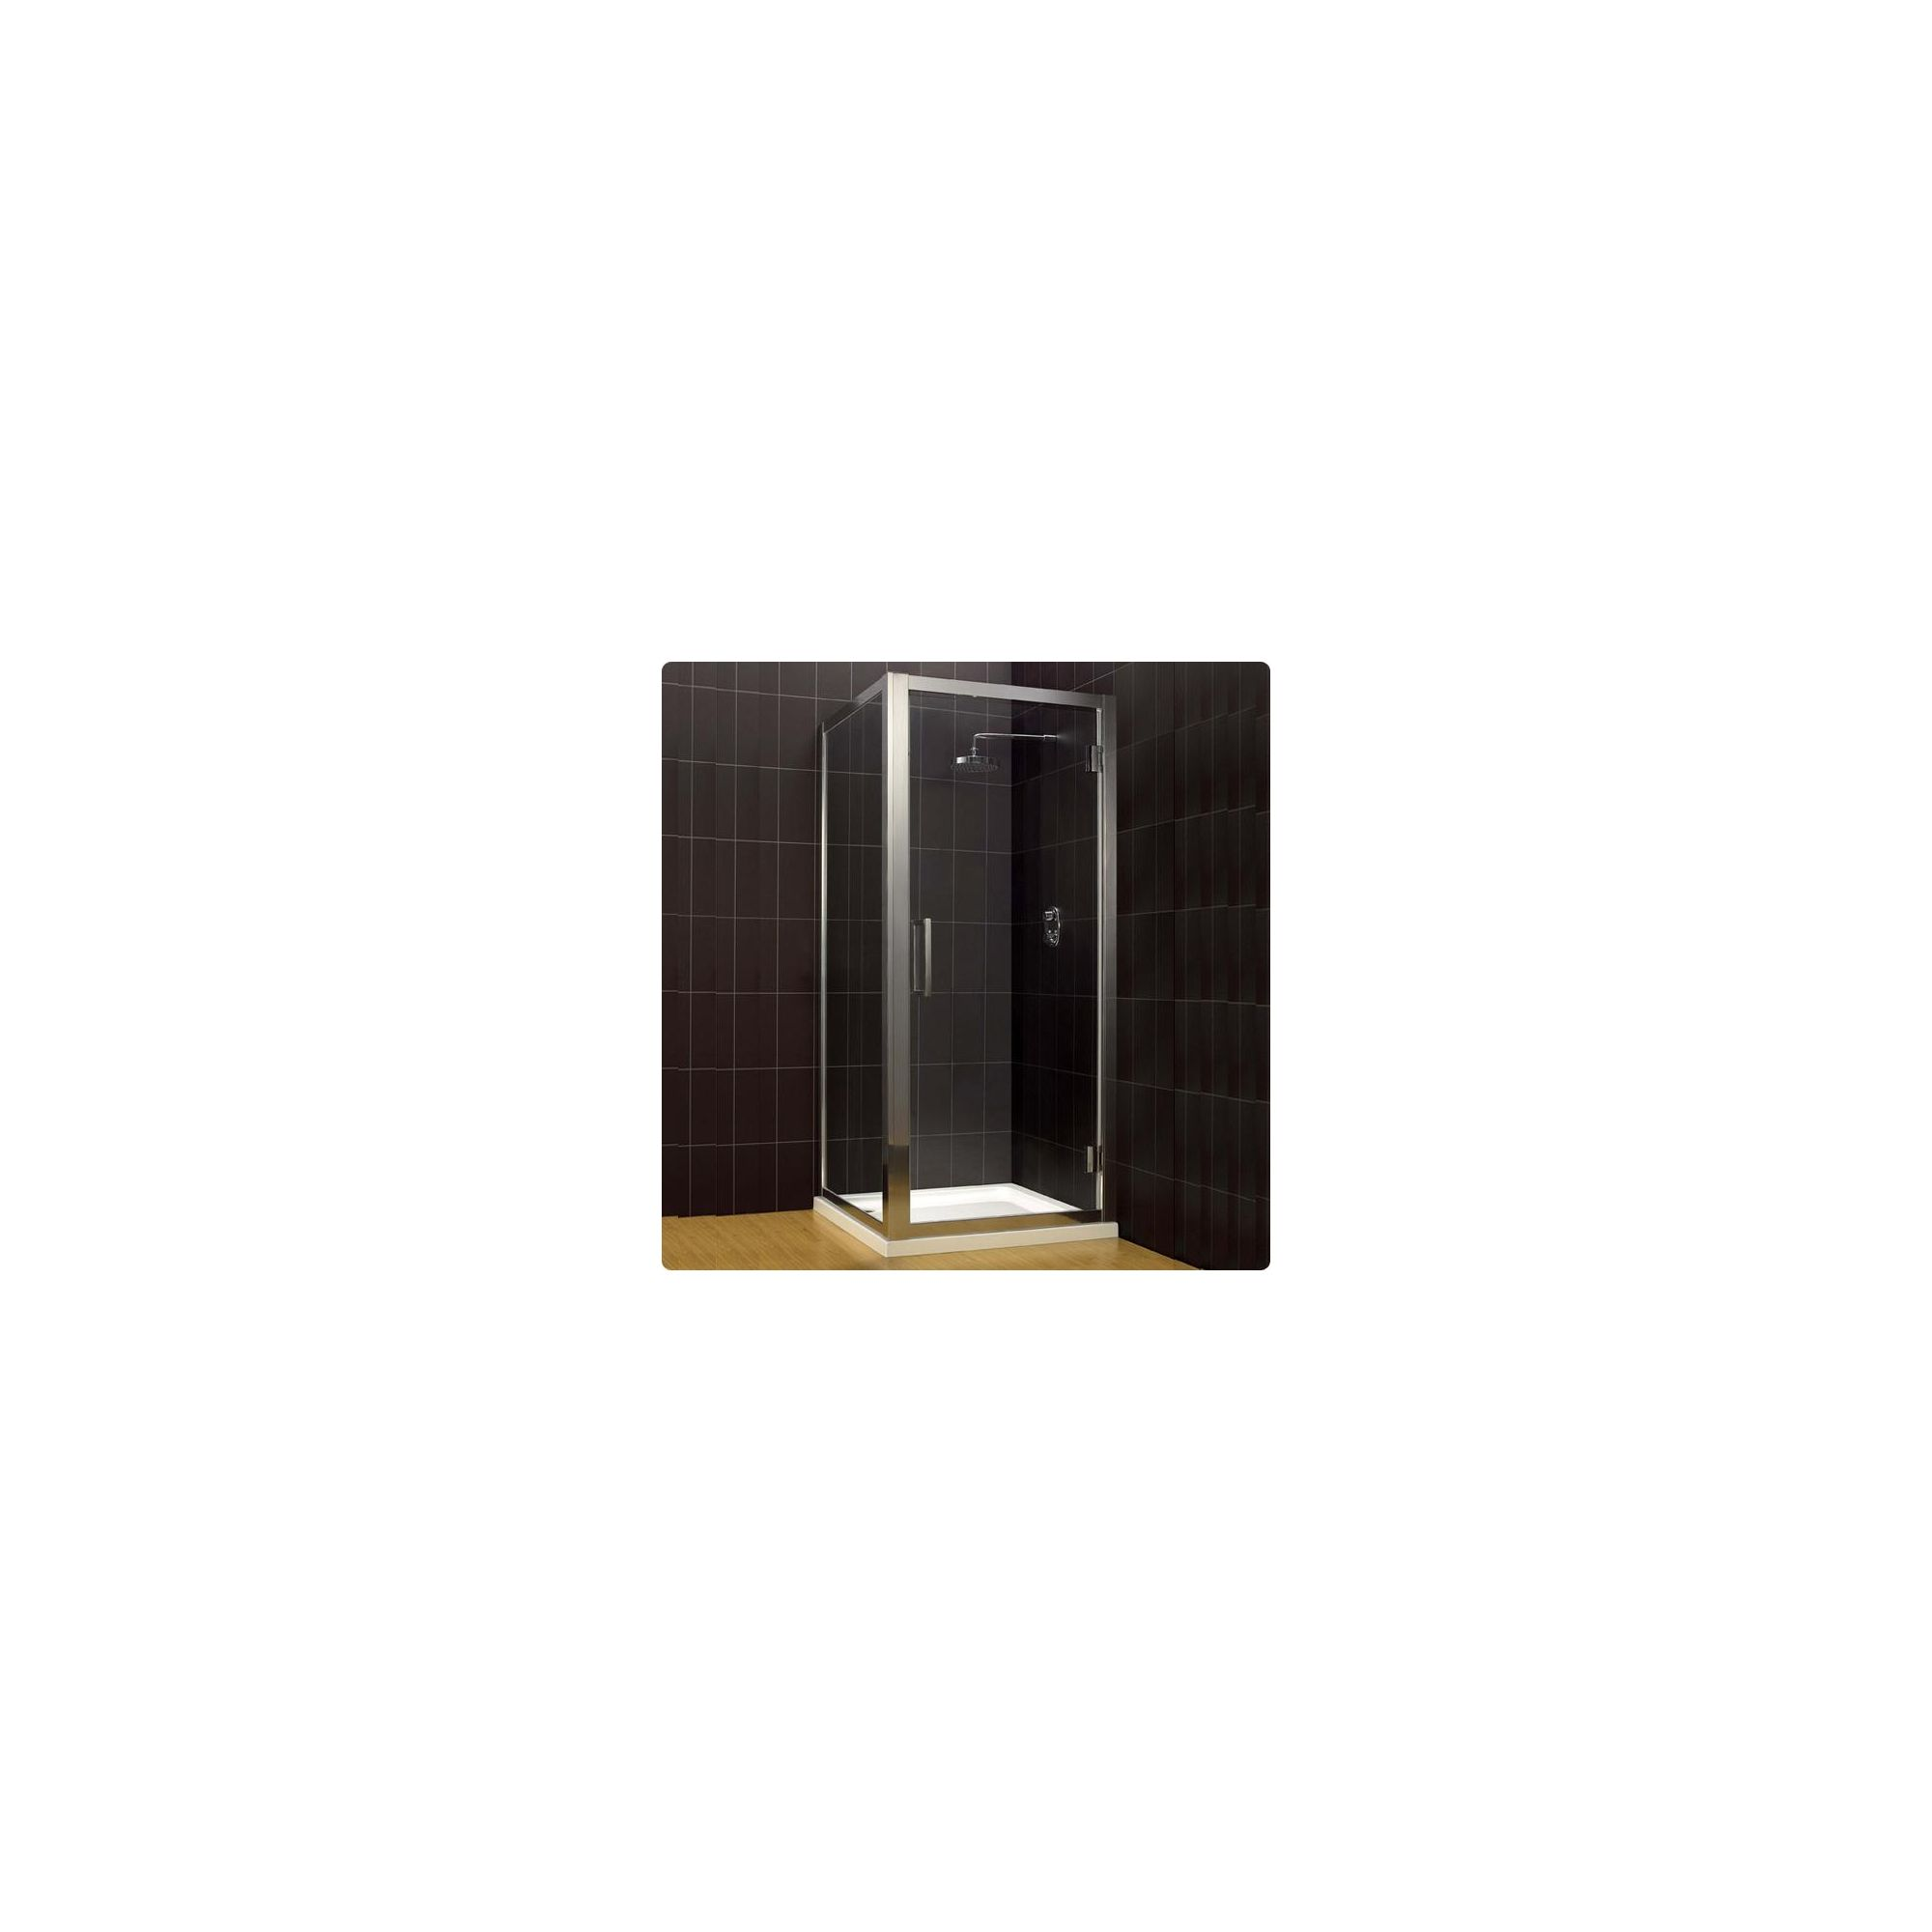 Duchy Supreme Silver Hinged Door Shower Enclosure, 900mm x 760mm, Standard Tray, 8mm Glass at Tesco Direct